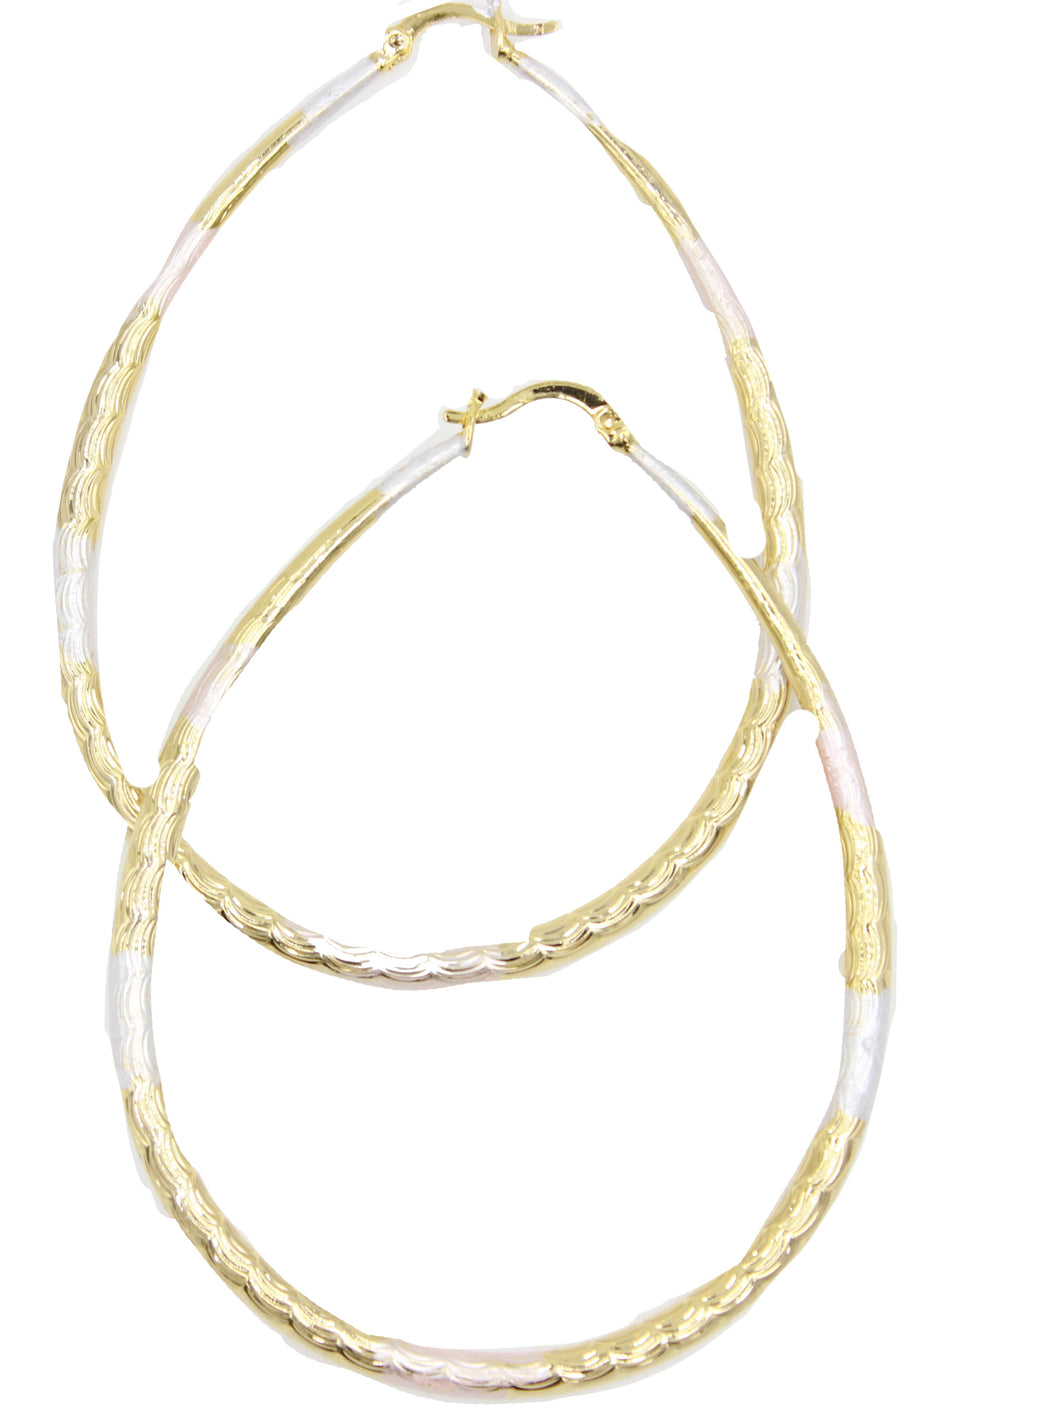 3 Inch Oval Hoop 3 Tone 18k Gold Plated - Oval Hoops 18k Gold Plated